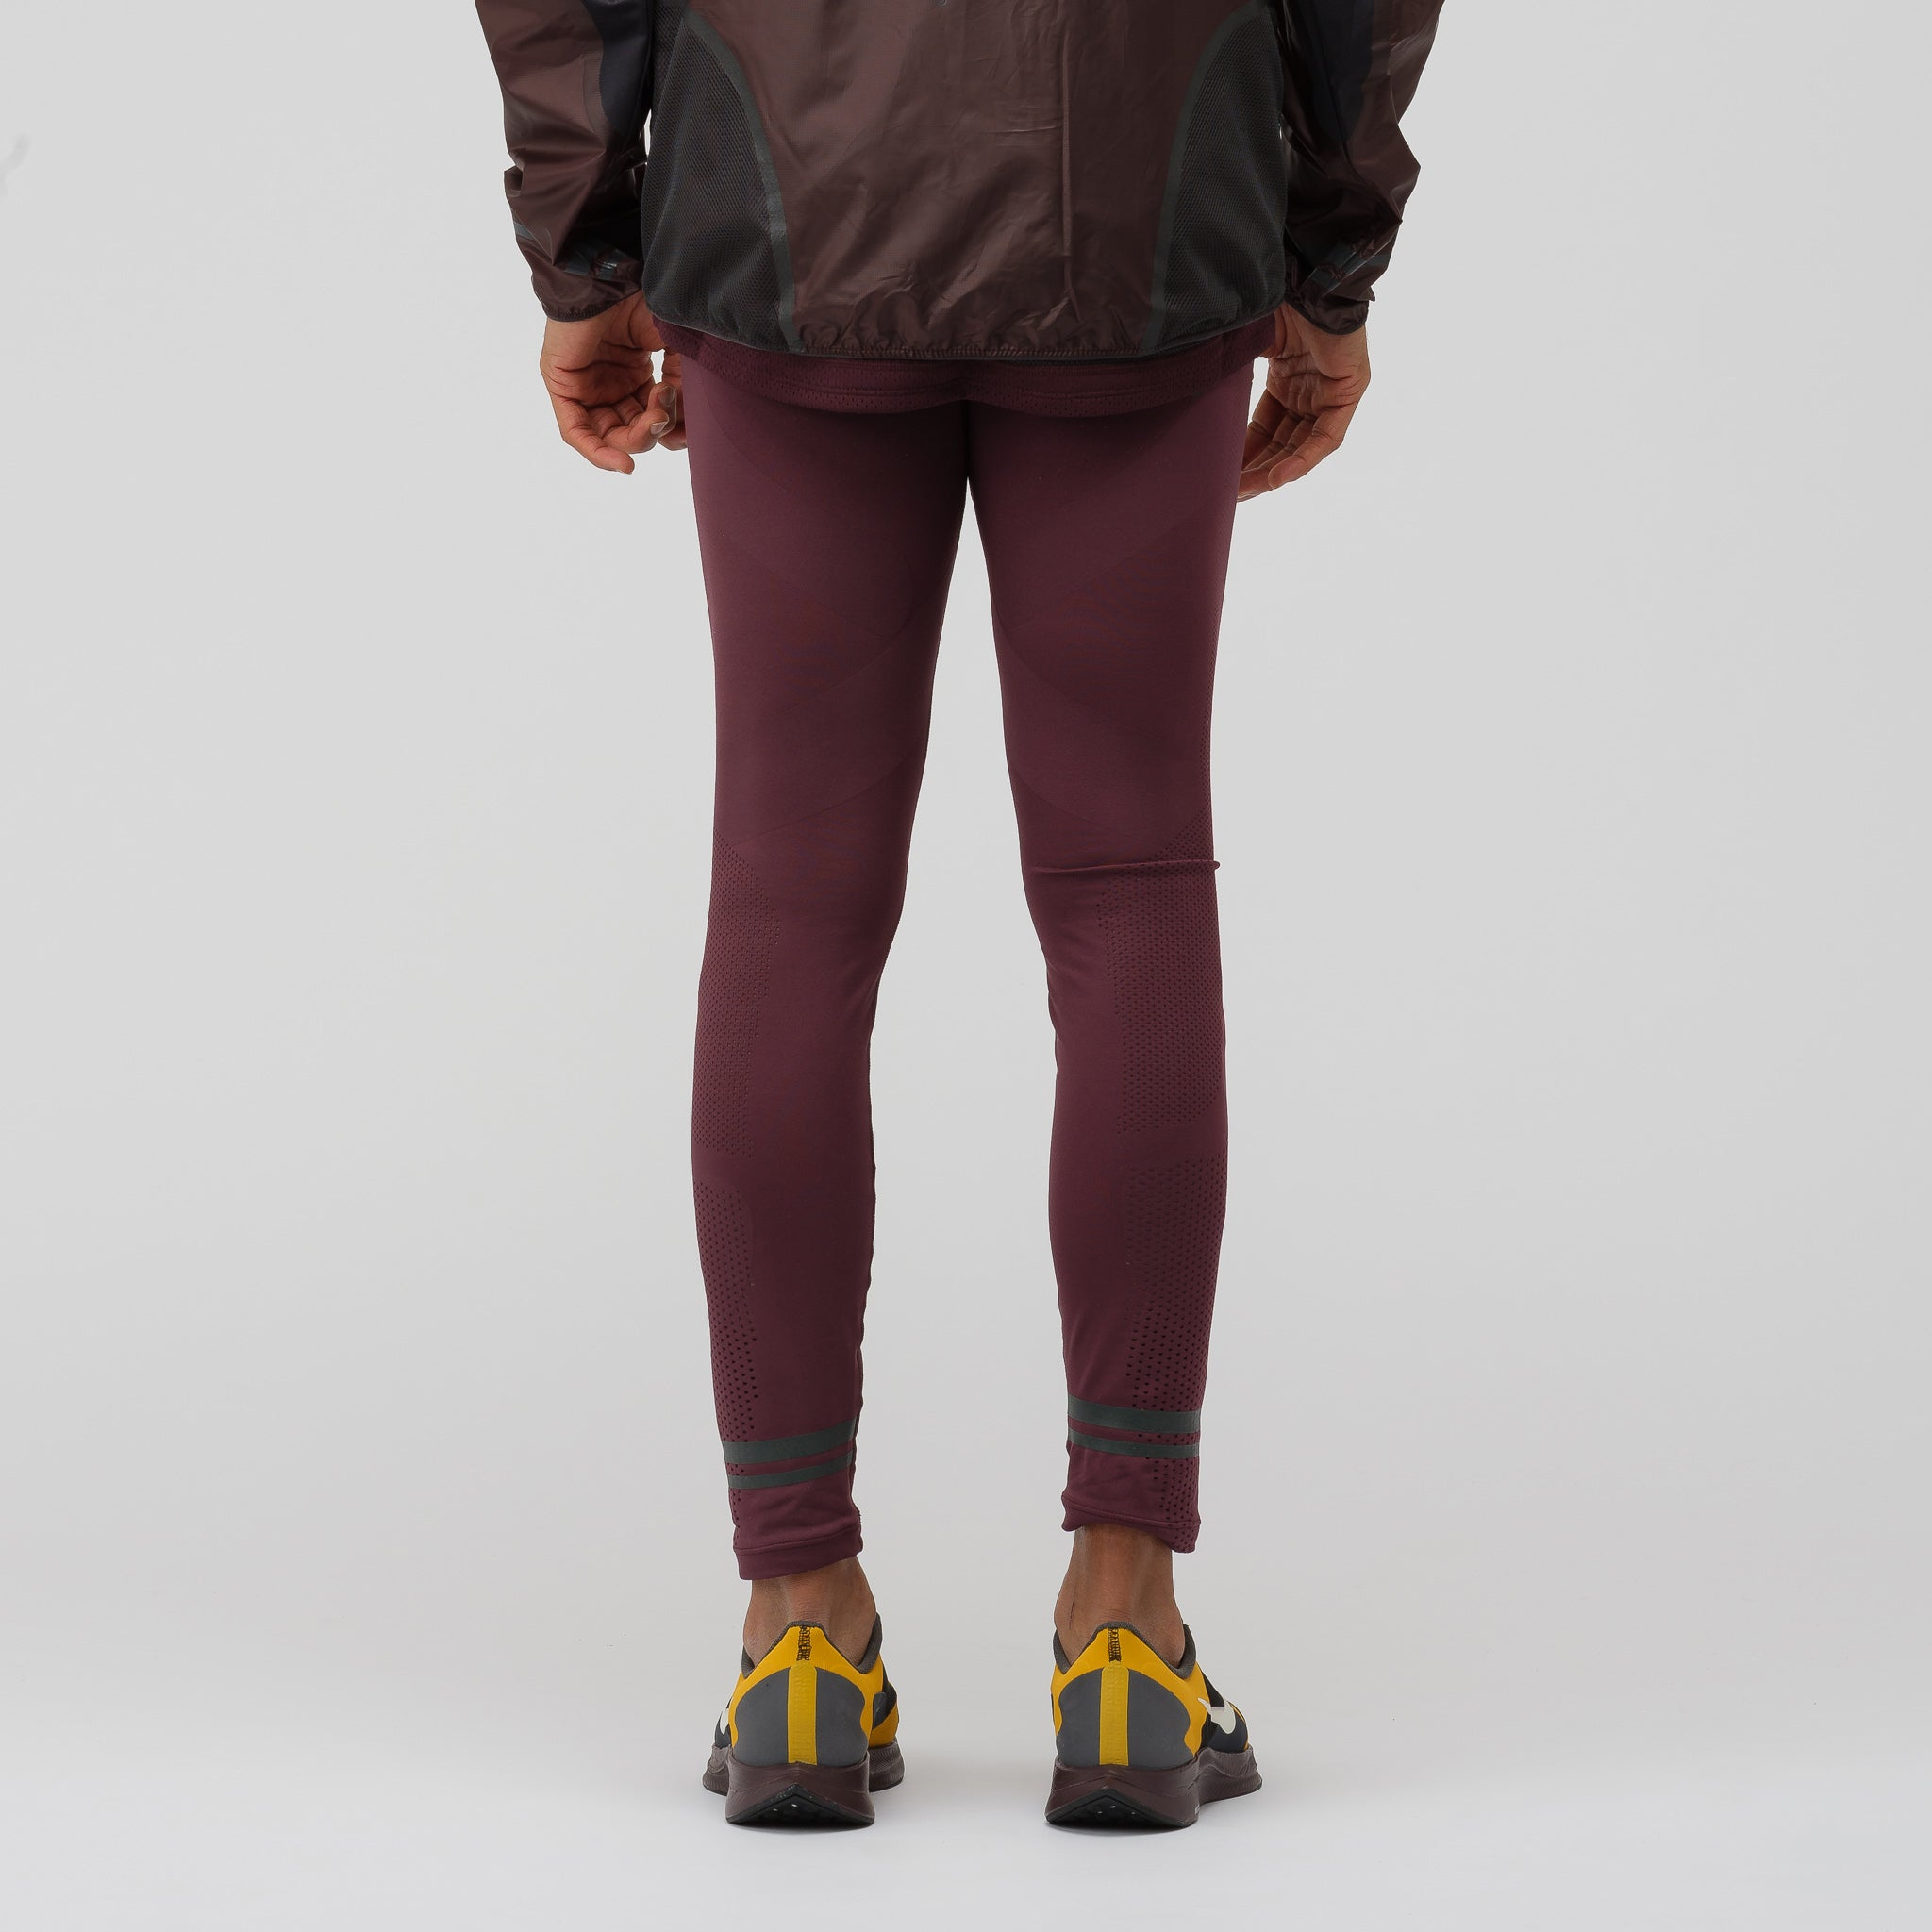 Gyakusou TechKnit Tights in Deep Burgundy/Off Noir